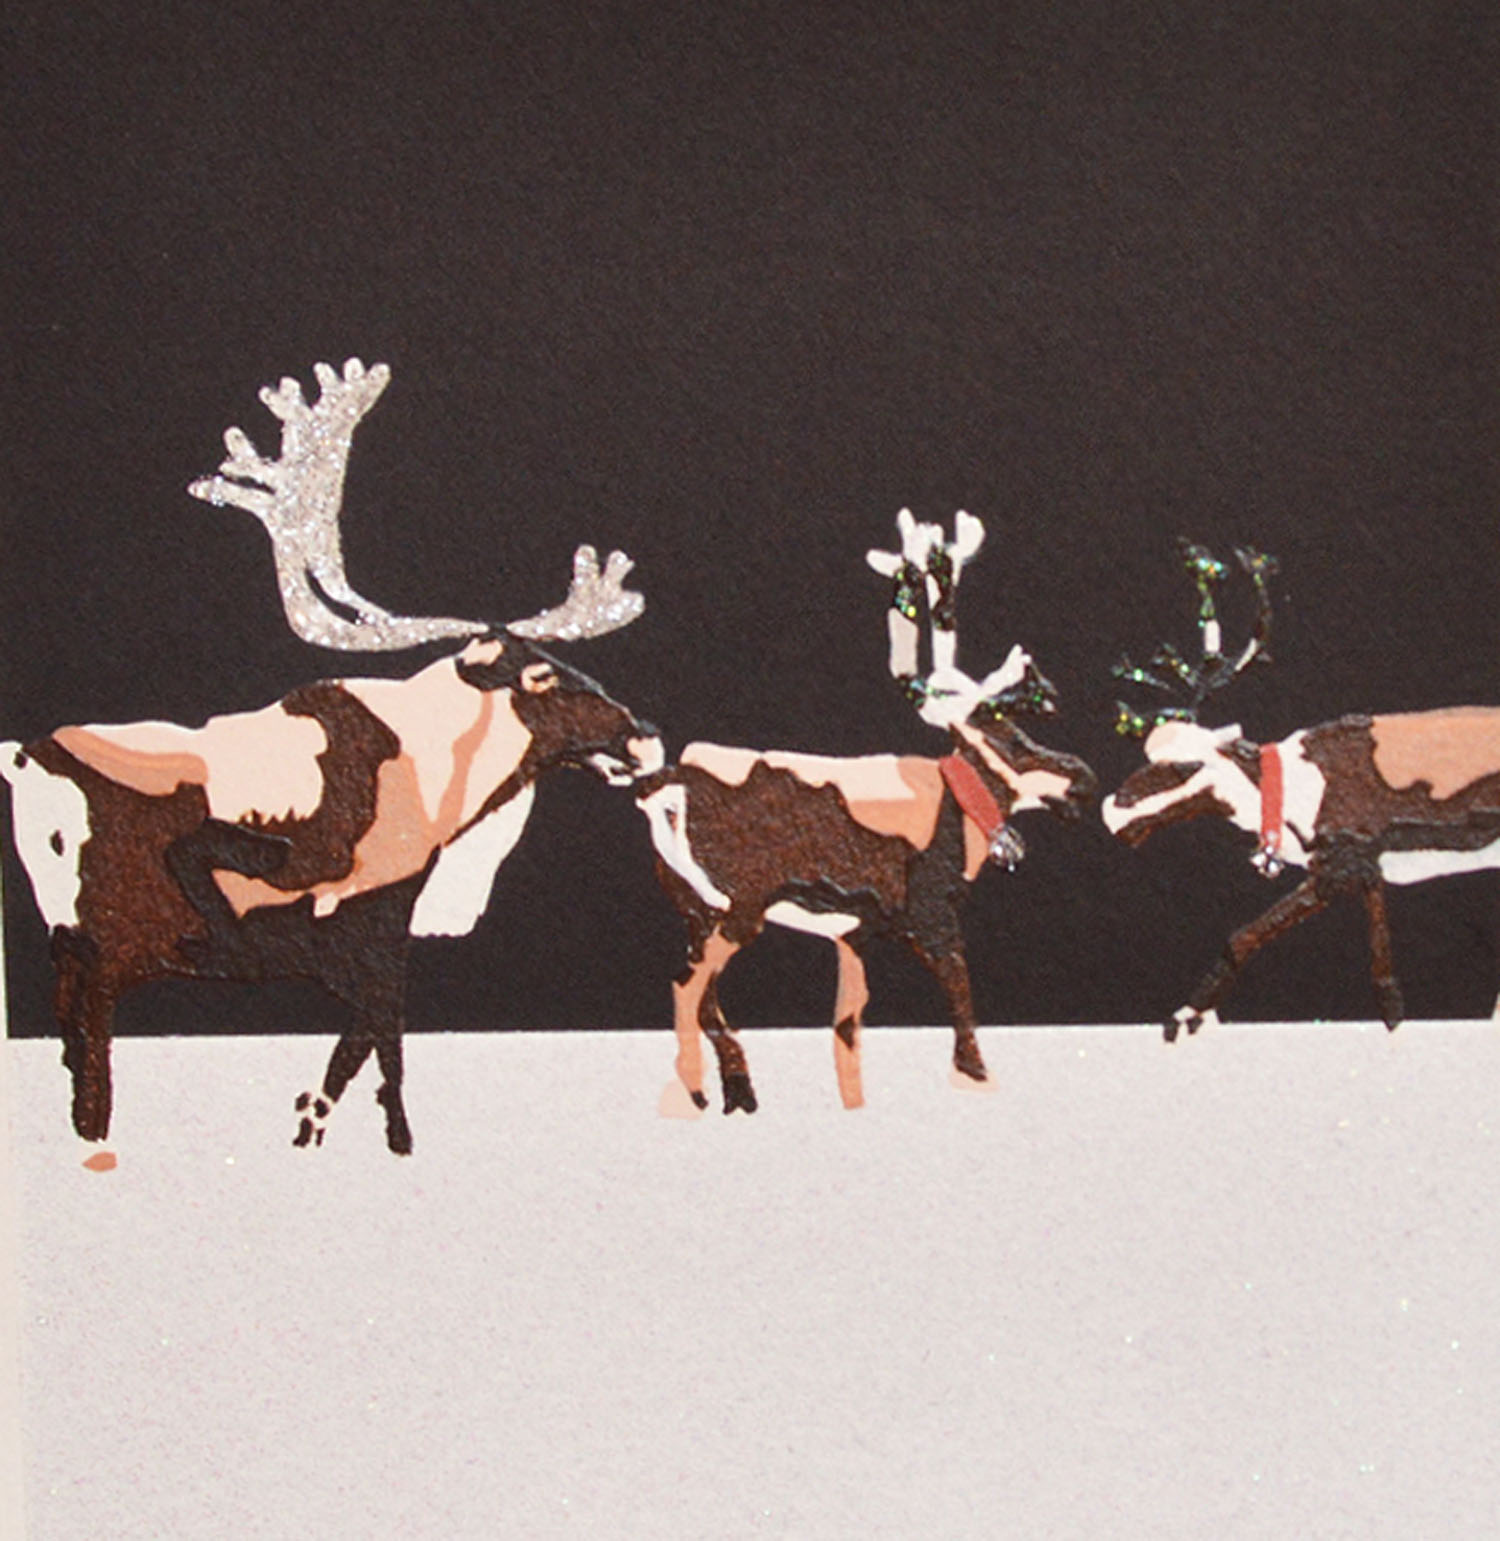 Not So Holiday Reindeer